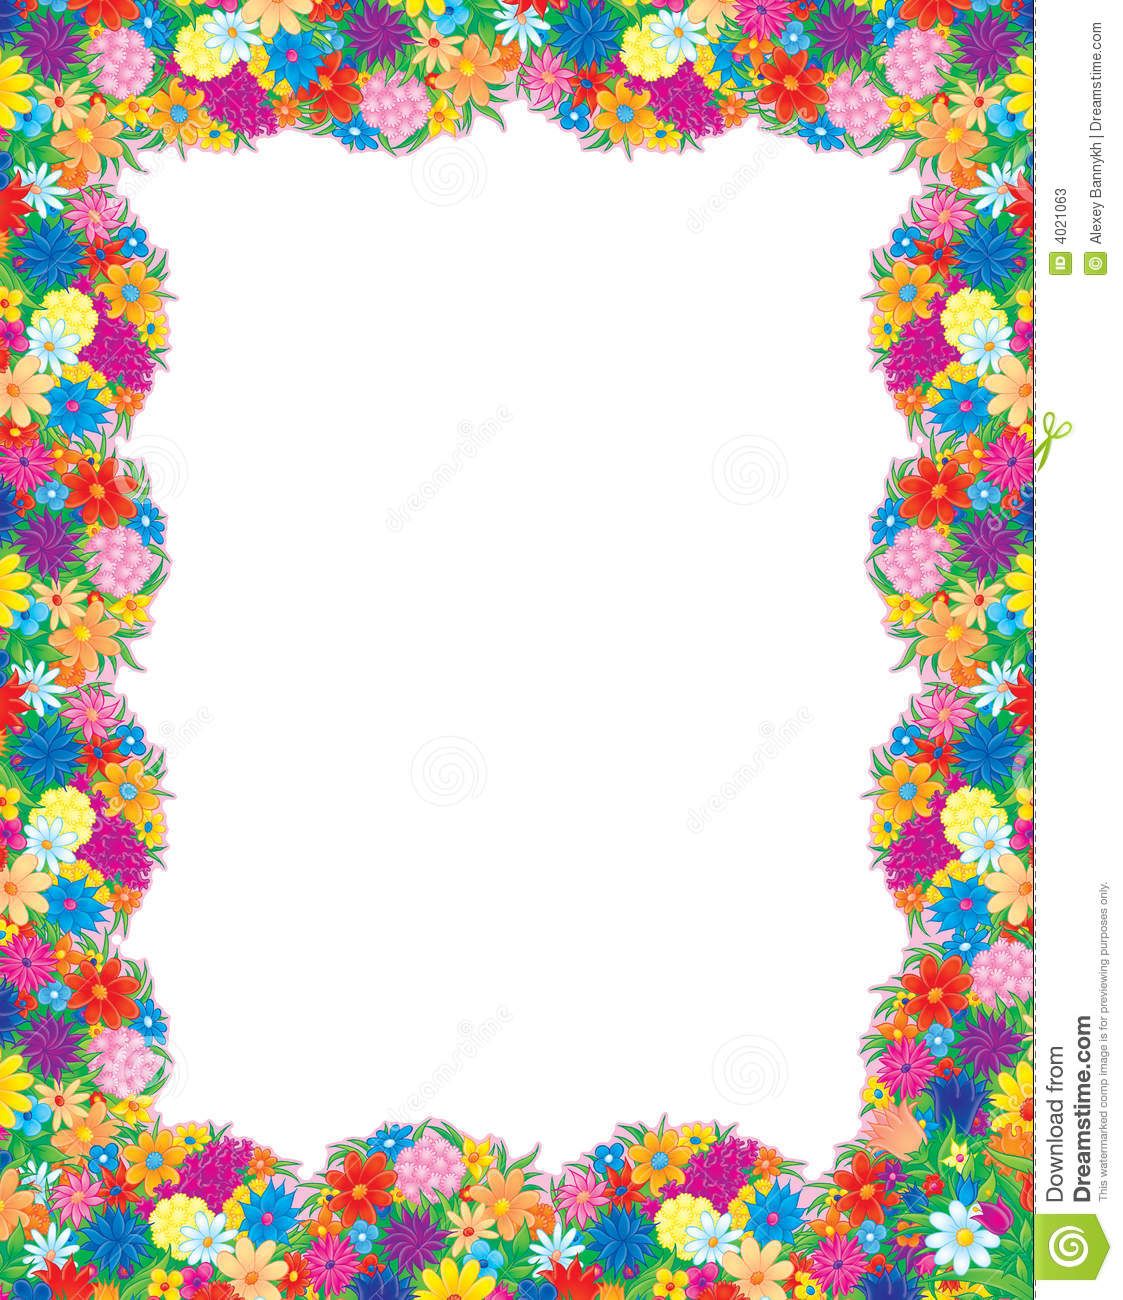 flowers photo frame stock illustration image of bouquet bouquet of flowers clip art images bouquet of flowers clip art blanks